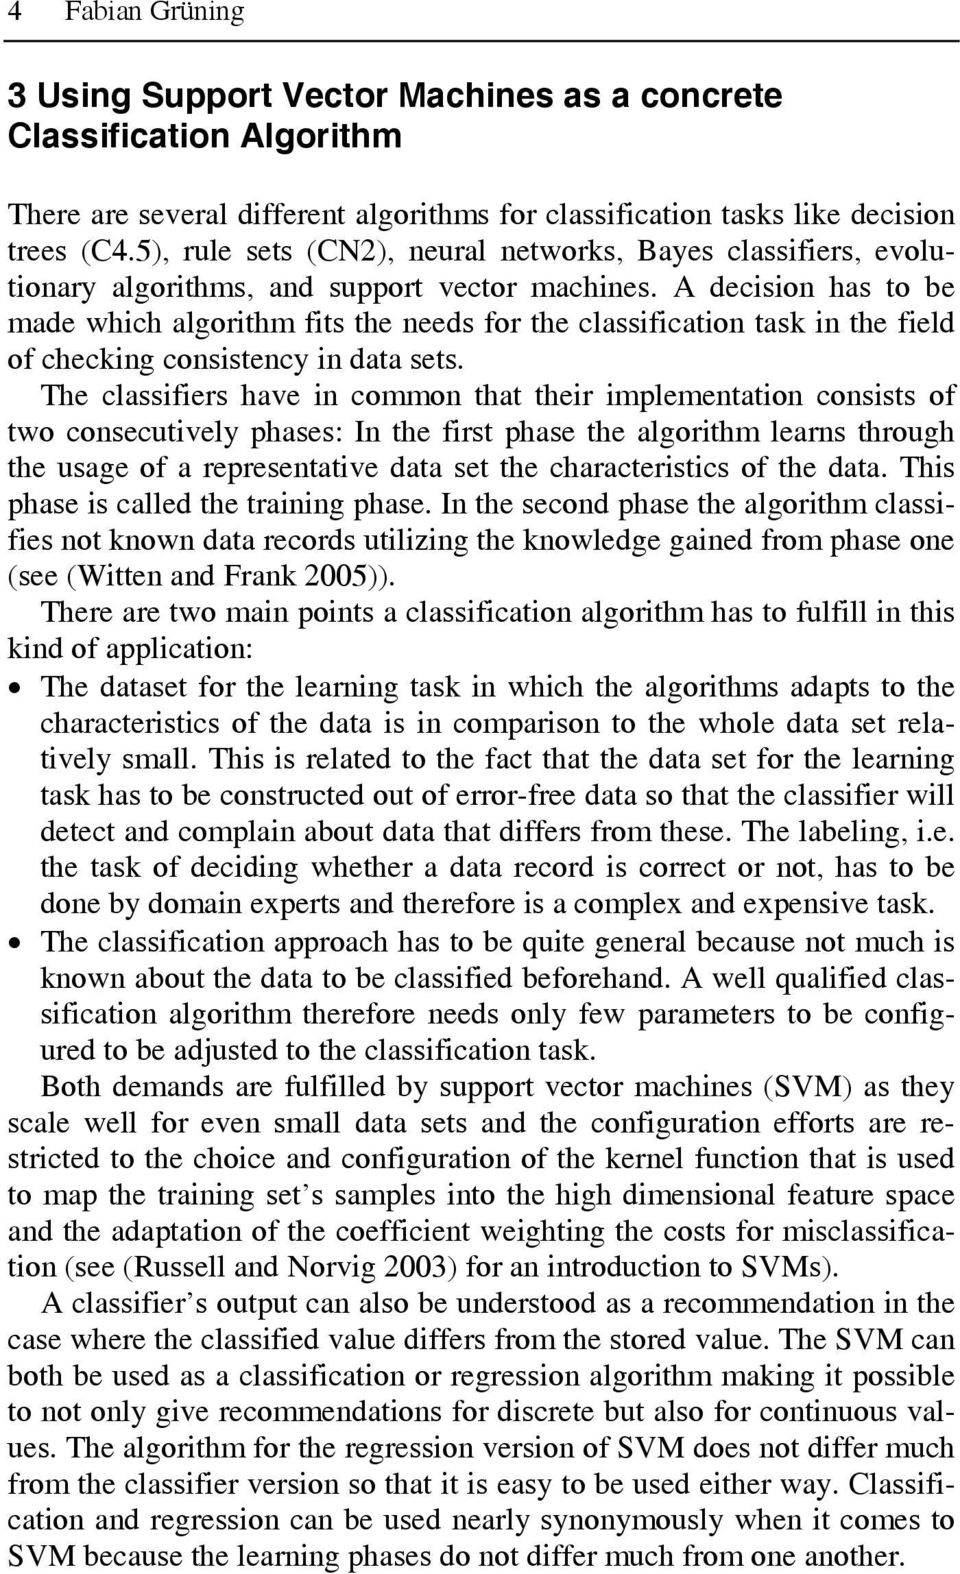 A decision has to be made which algorithm fits the needs for the classification task in the field of checking consistency in data sets.